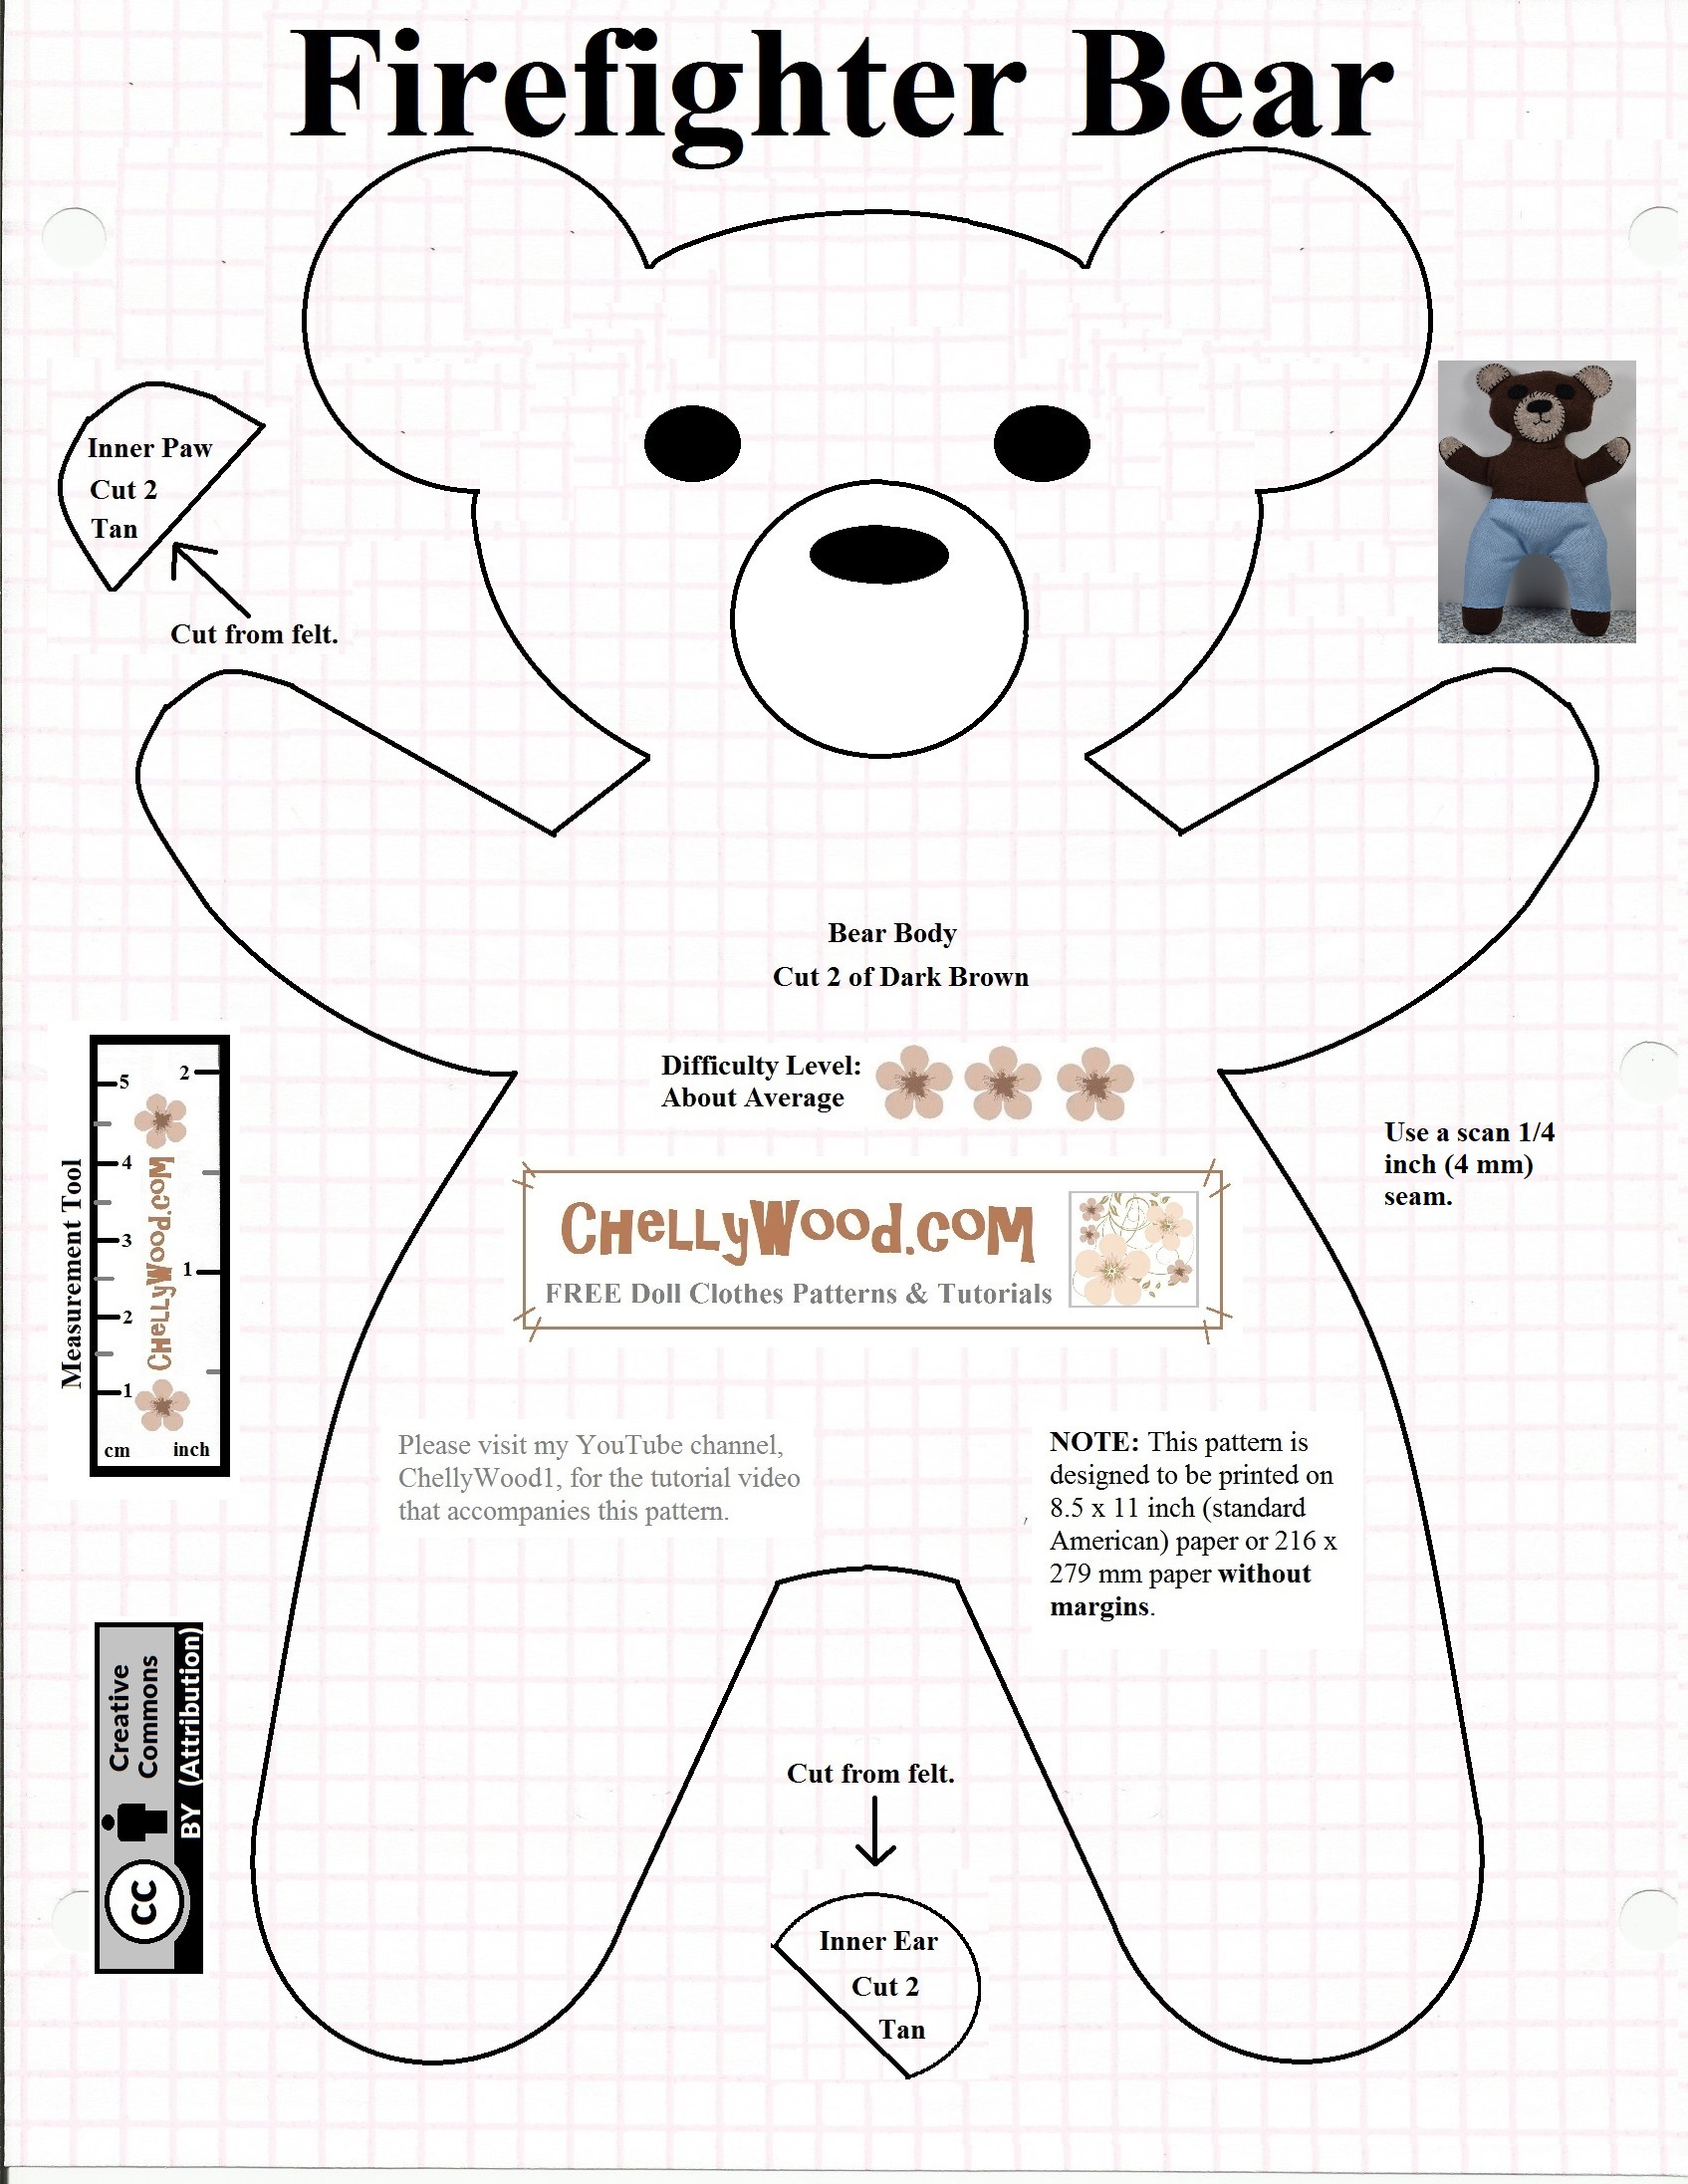 Sew A Bear With Free Sewing Pattern Chellywood Com Chellywood Com